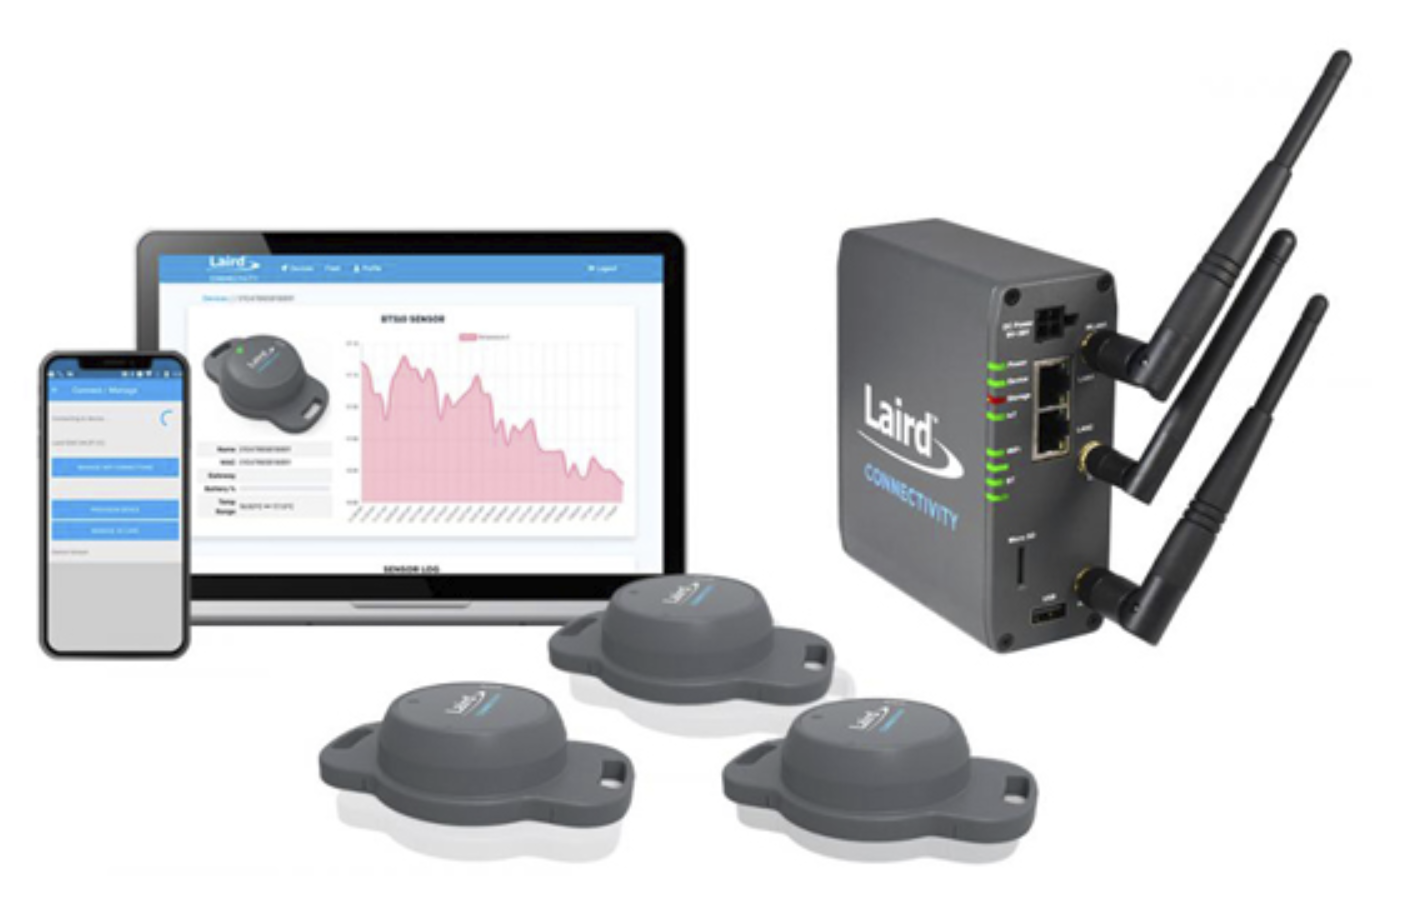 Laird simplifies connecting Bluetooth sensors to cloud